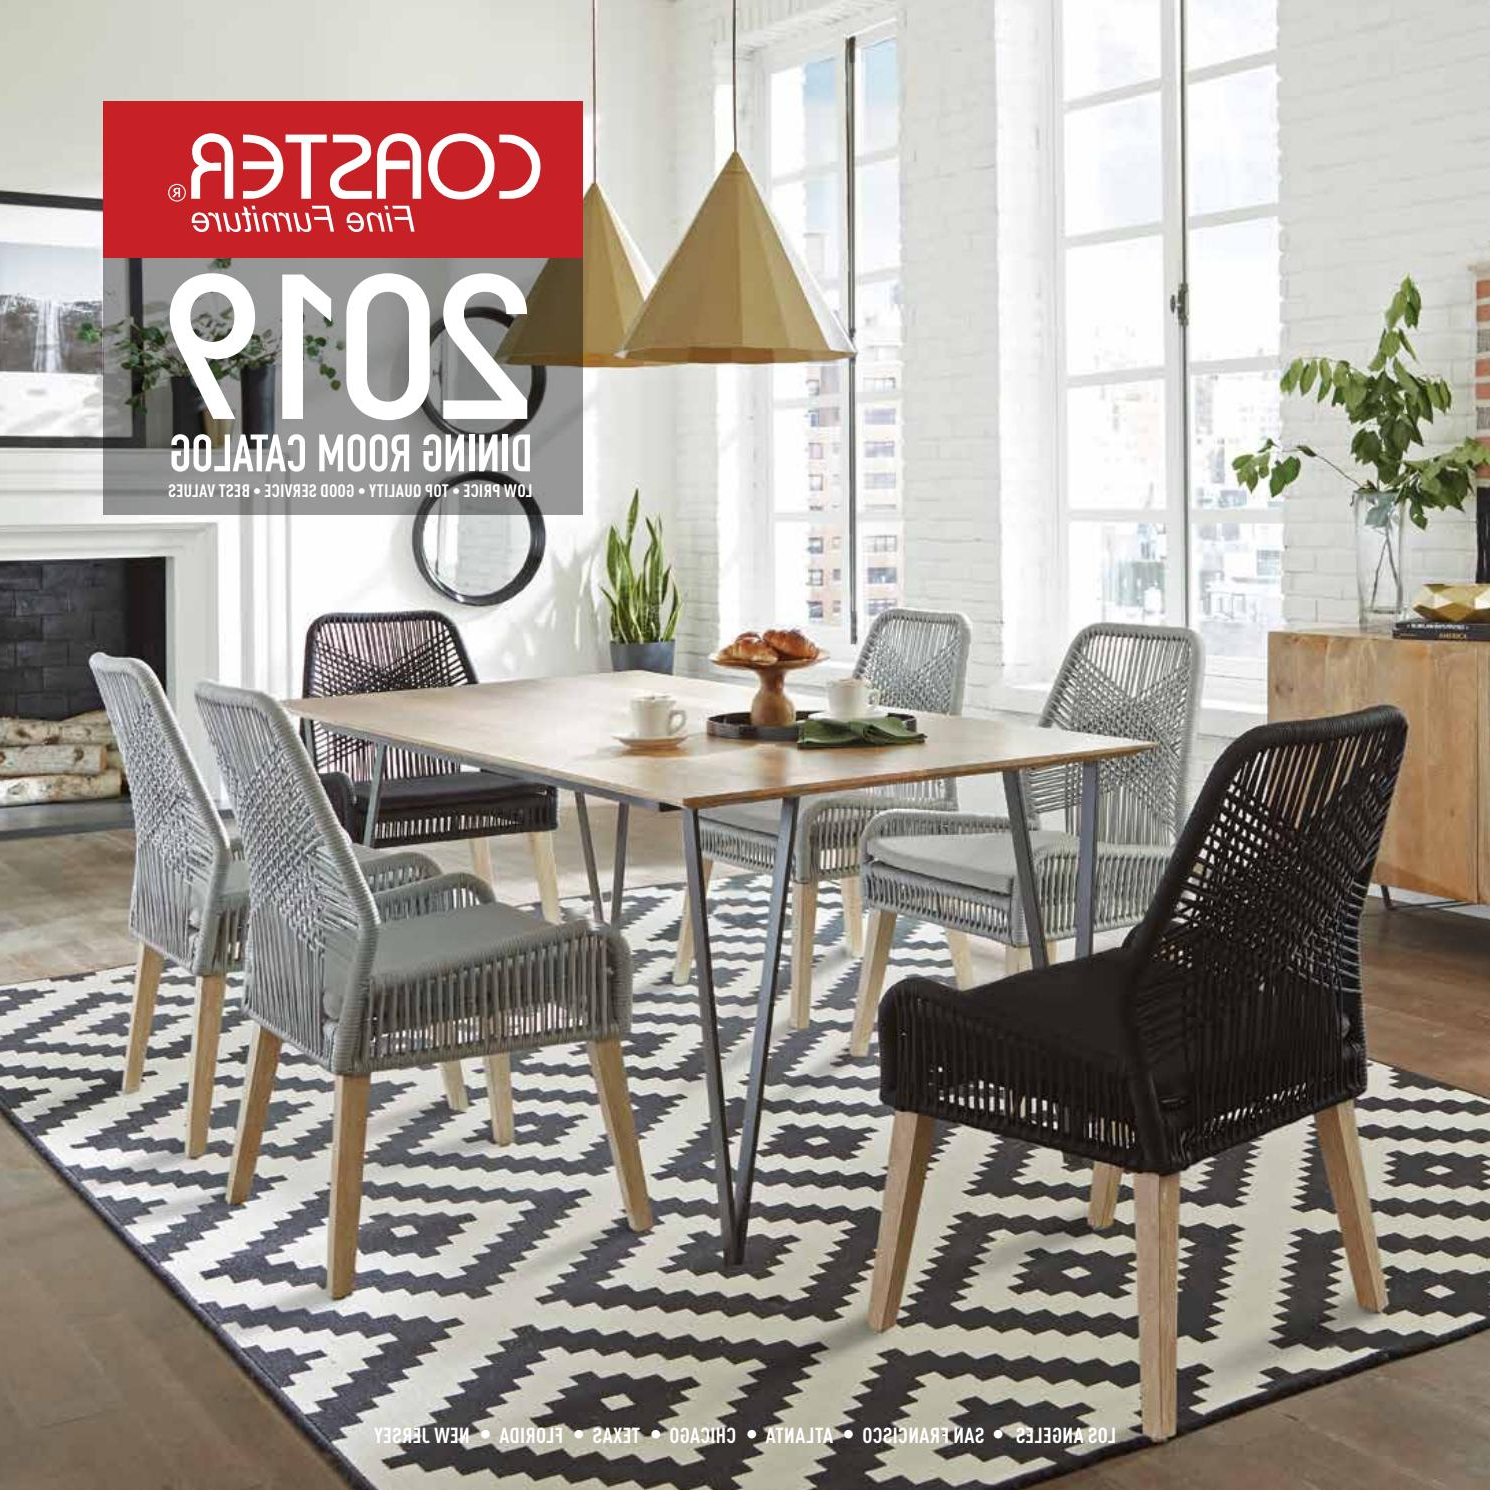 Fashionable Rustic Mid Century Modern 6 Seating Dining Tables In White And Natural Wood Regarding Coaster 2019 Dining Room Catalogcoaster Company Of (View 23 of 25)